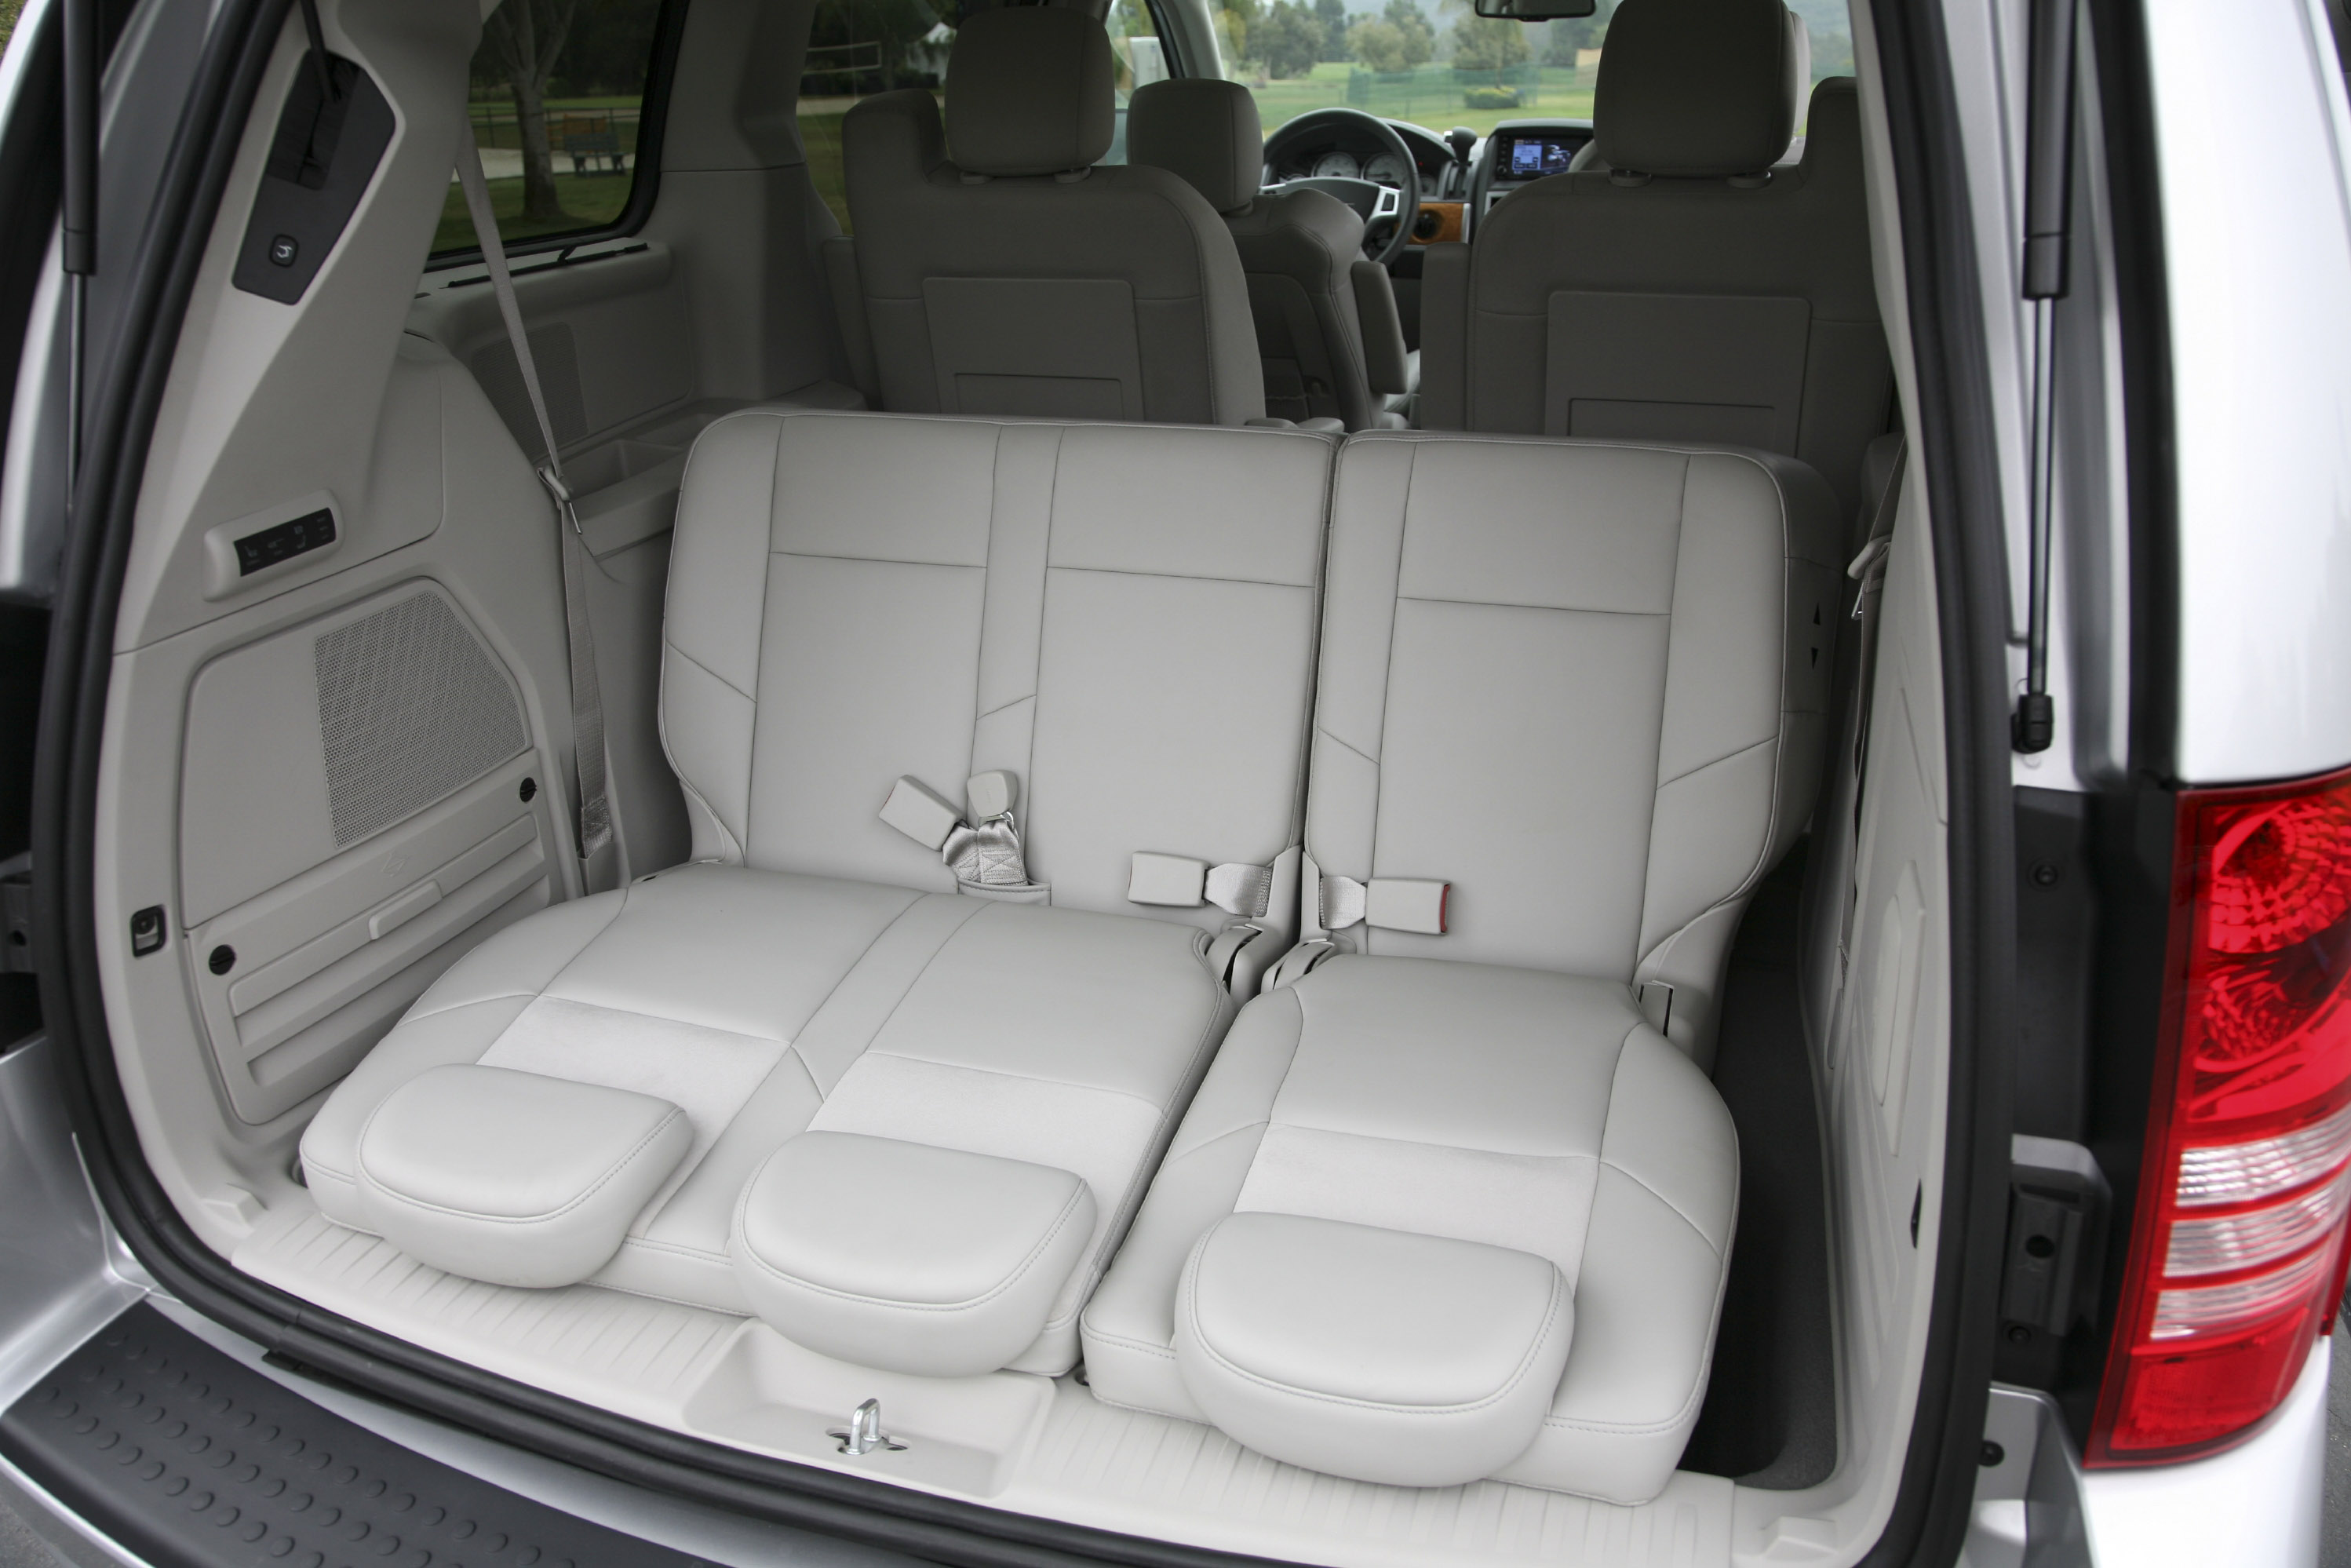 Town And Country Minivan Interior New Used Car Reviews 2020